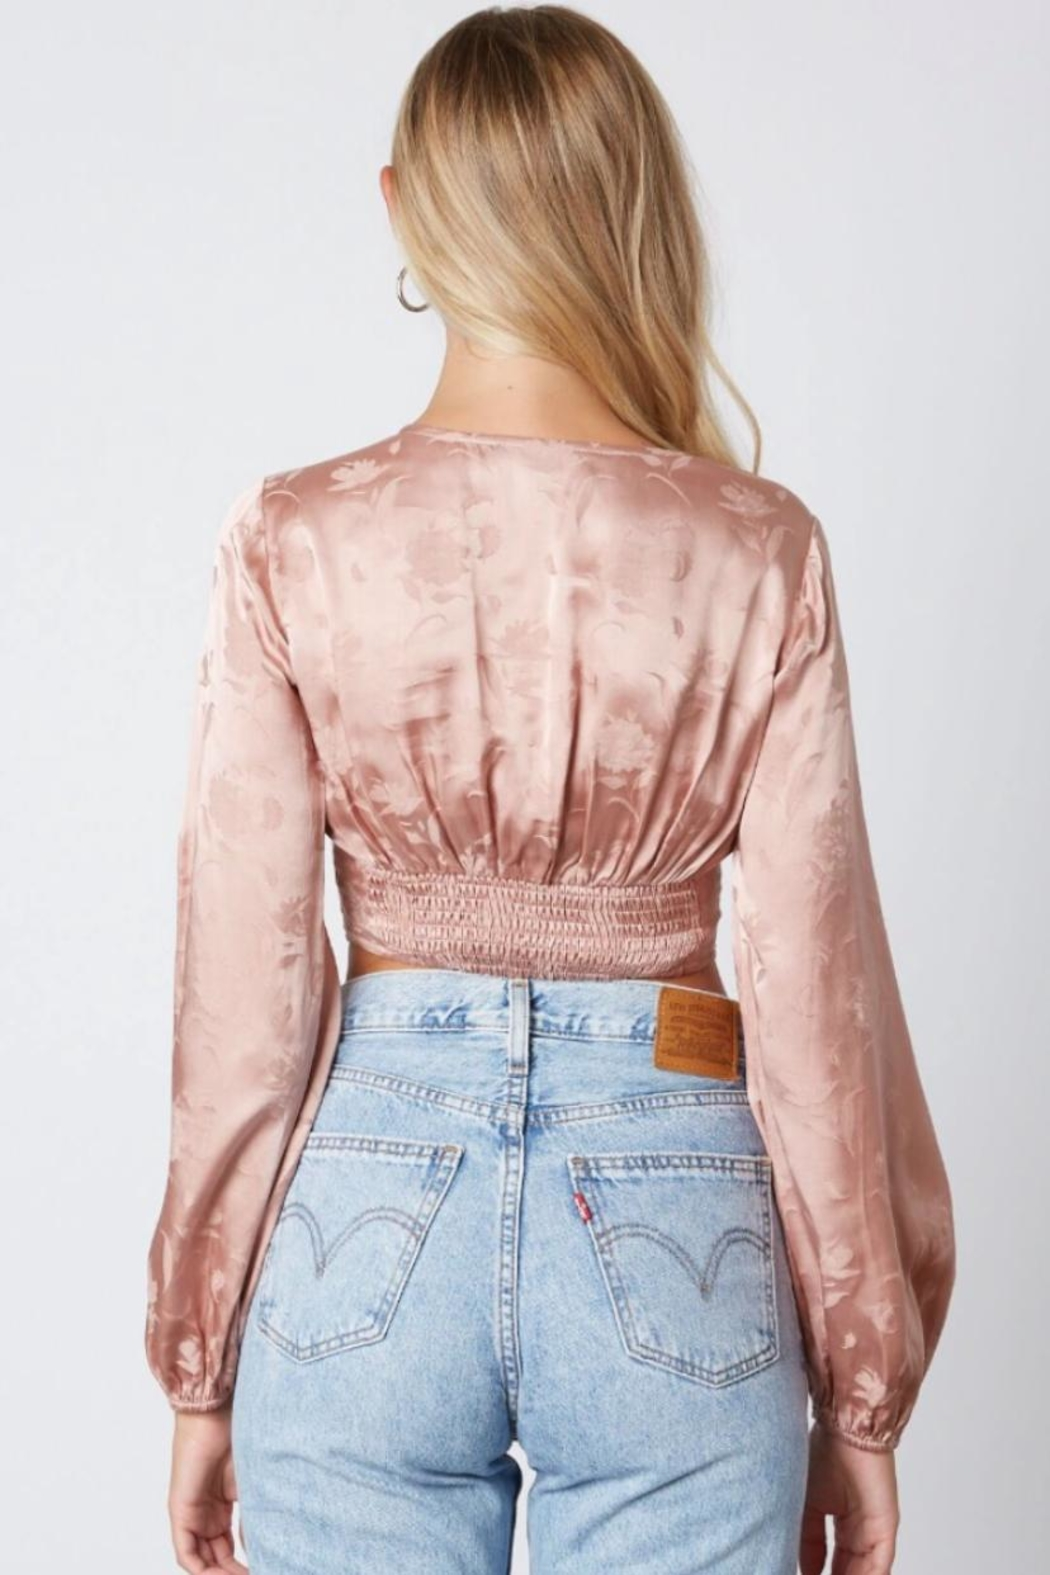 Cotton Candy LA Floral Embroidered Crop-Top - Front Full Image